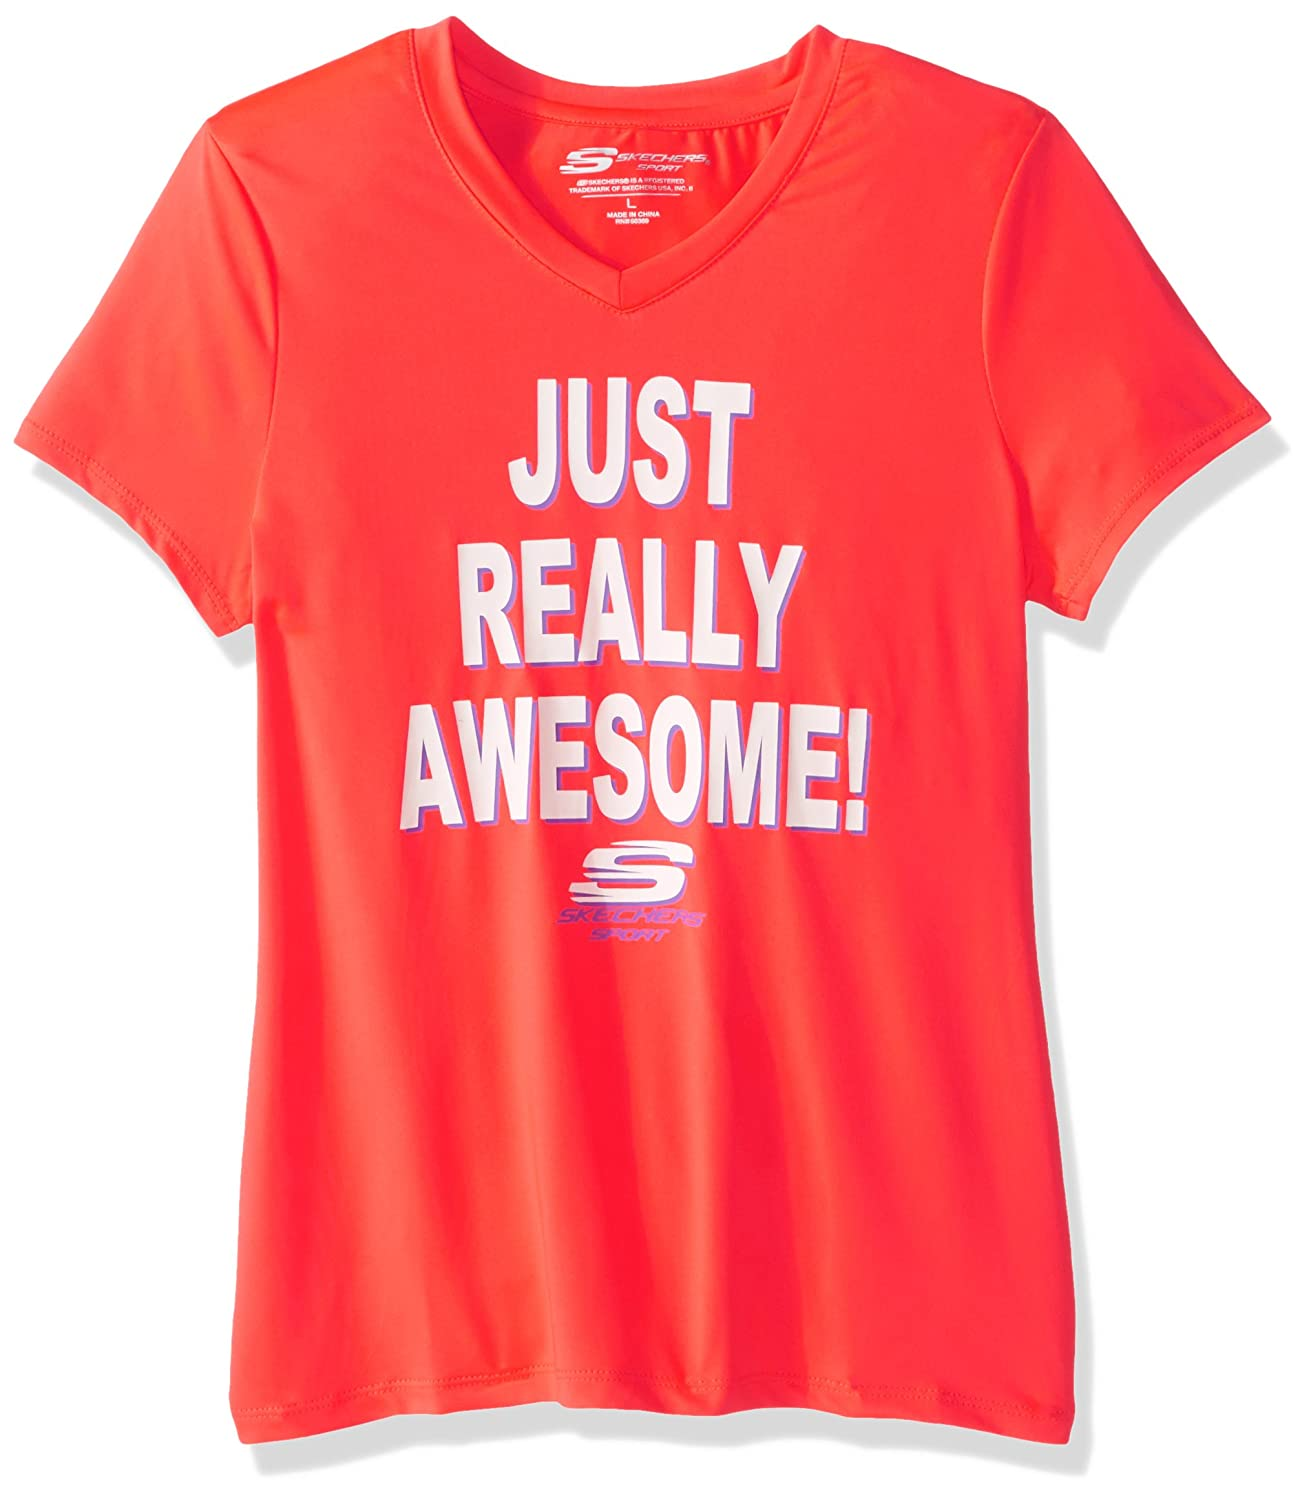 Skechers Big Girls Sport Short Sleeve T-Shirt Fiery Coral Medium 10-12